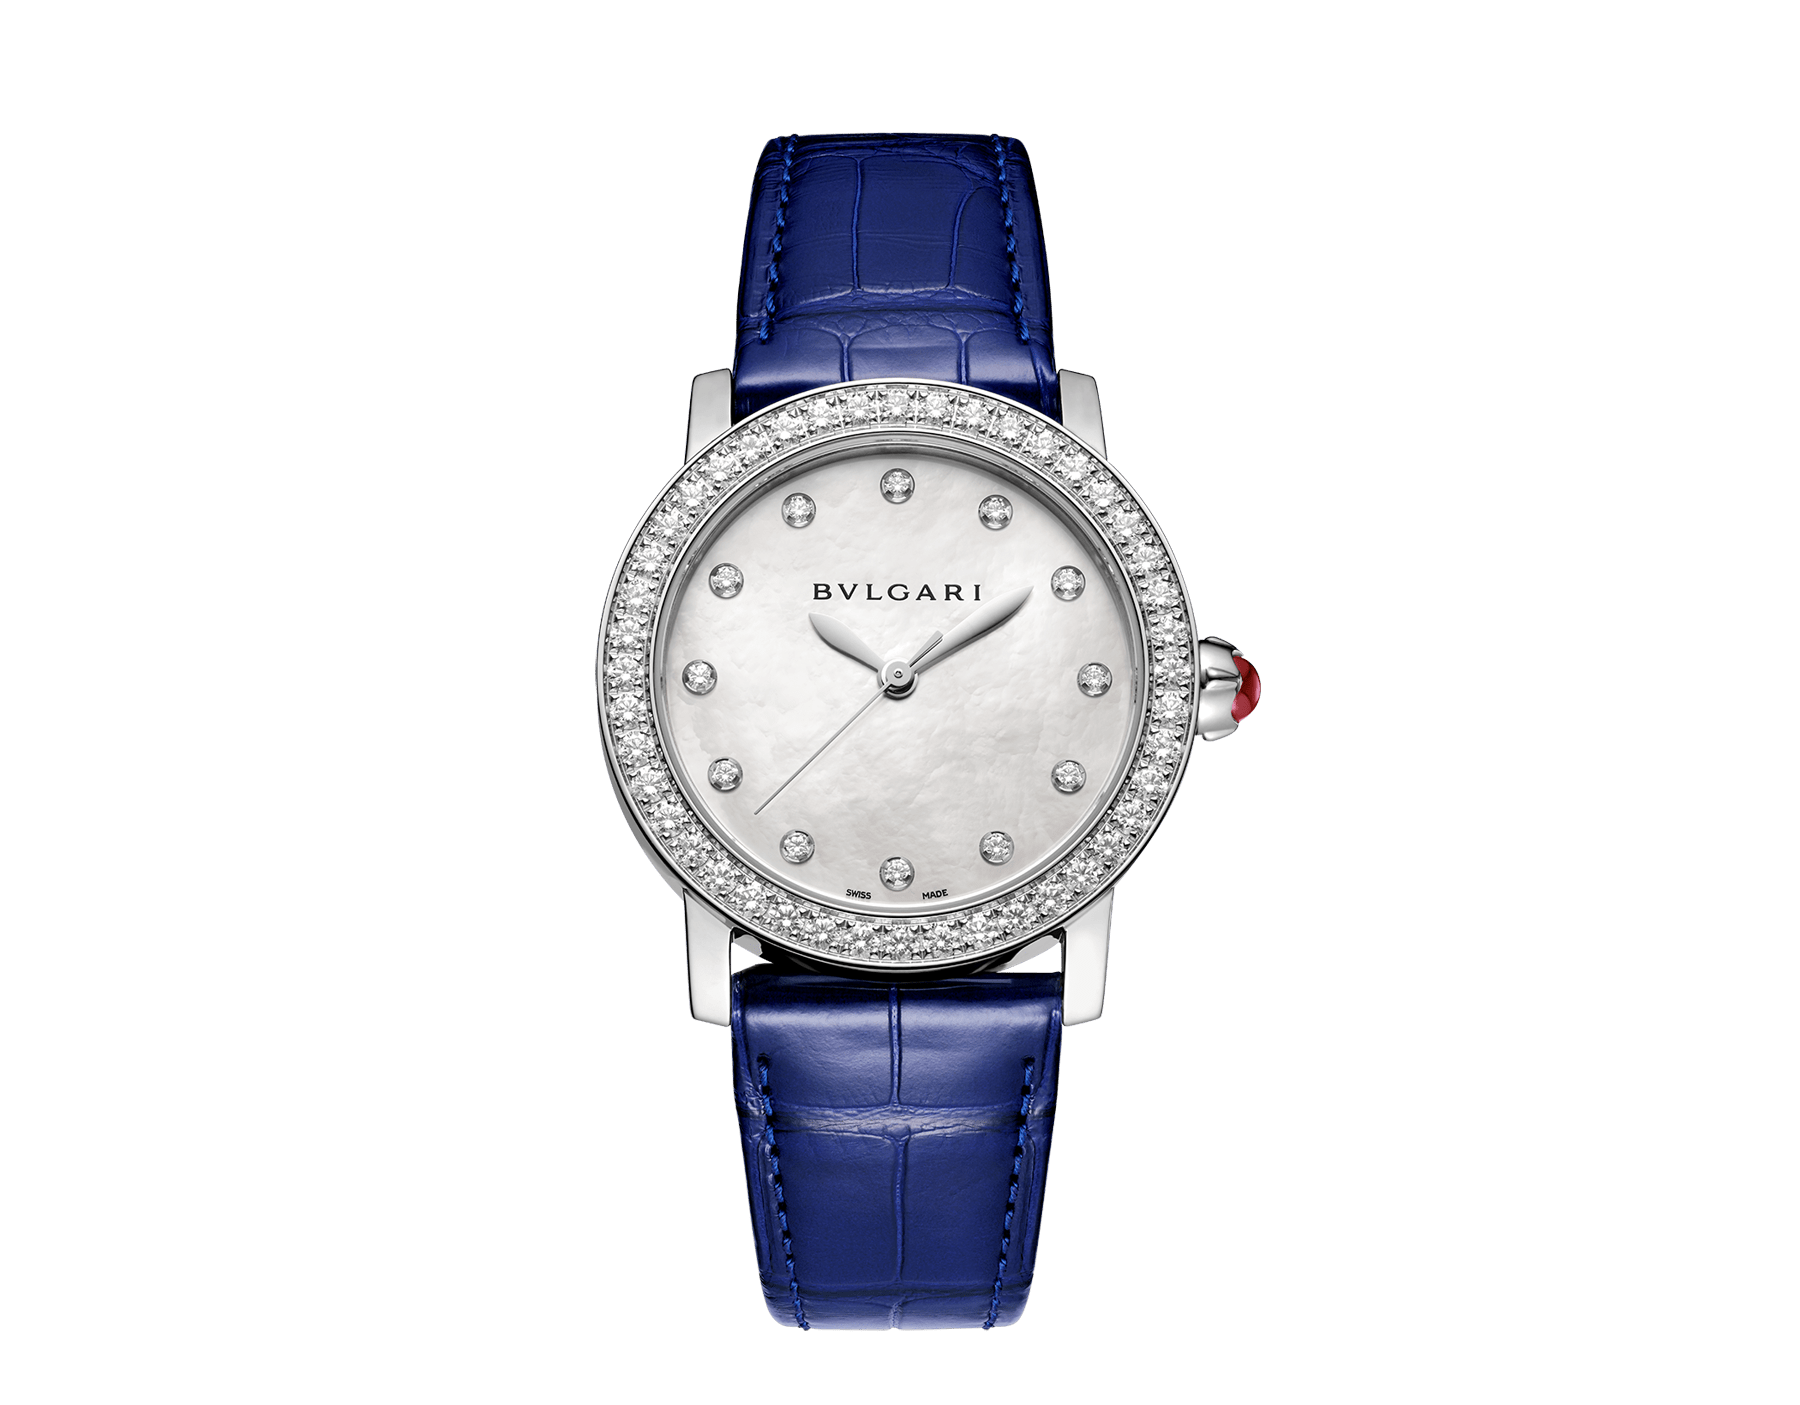 BVLGARI BVLGARI watch with stainless steel case set with brilliant-cut diamonds, mother-of-pearl dial, diamond indexes and shiny blue alligator bracelet 102721 image 1